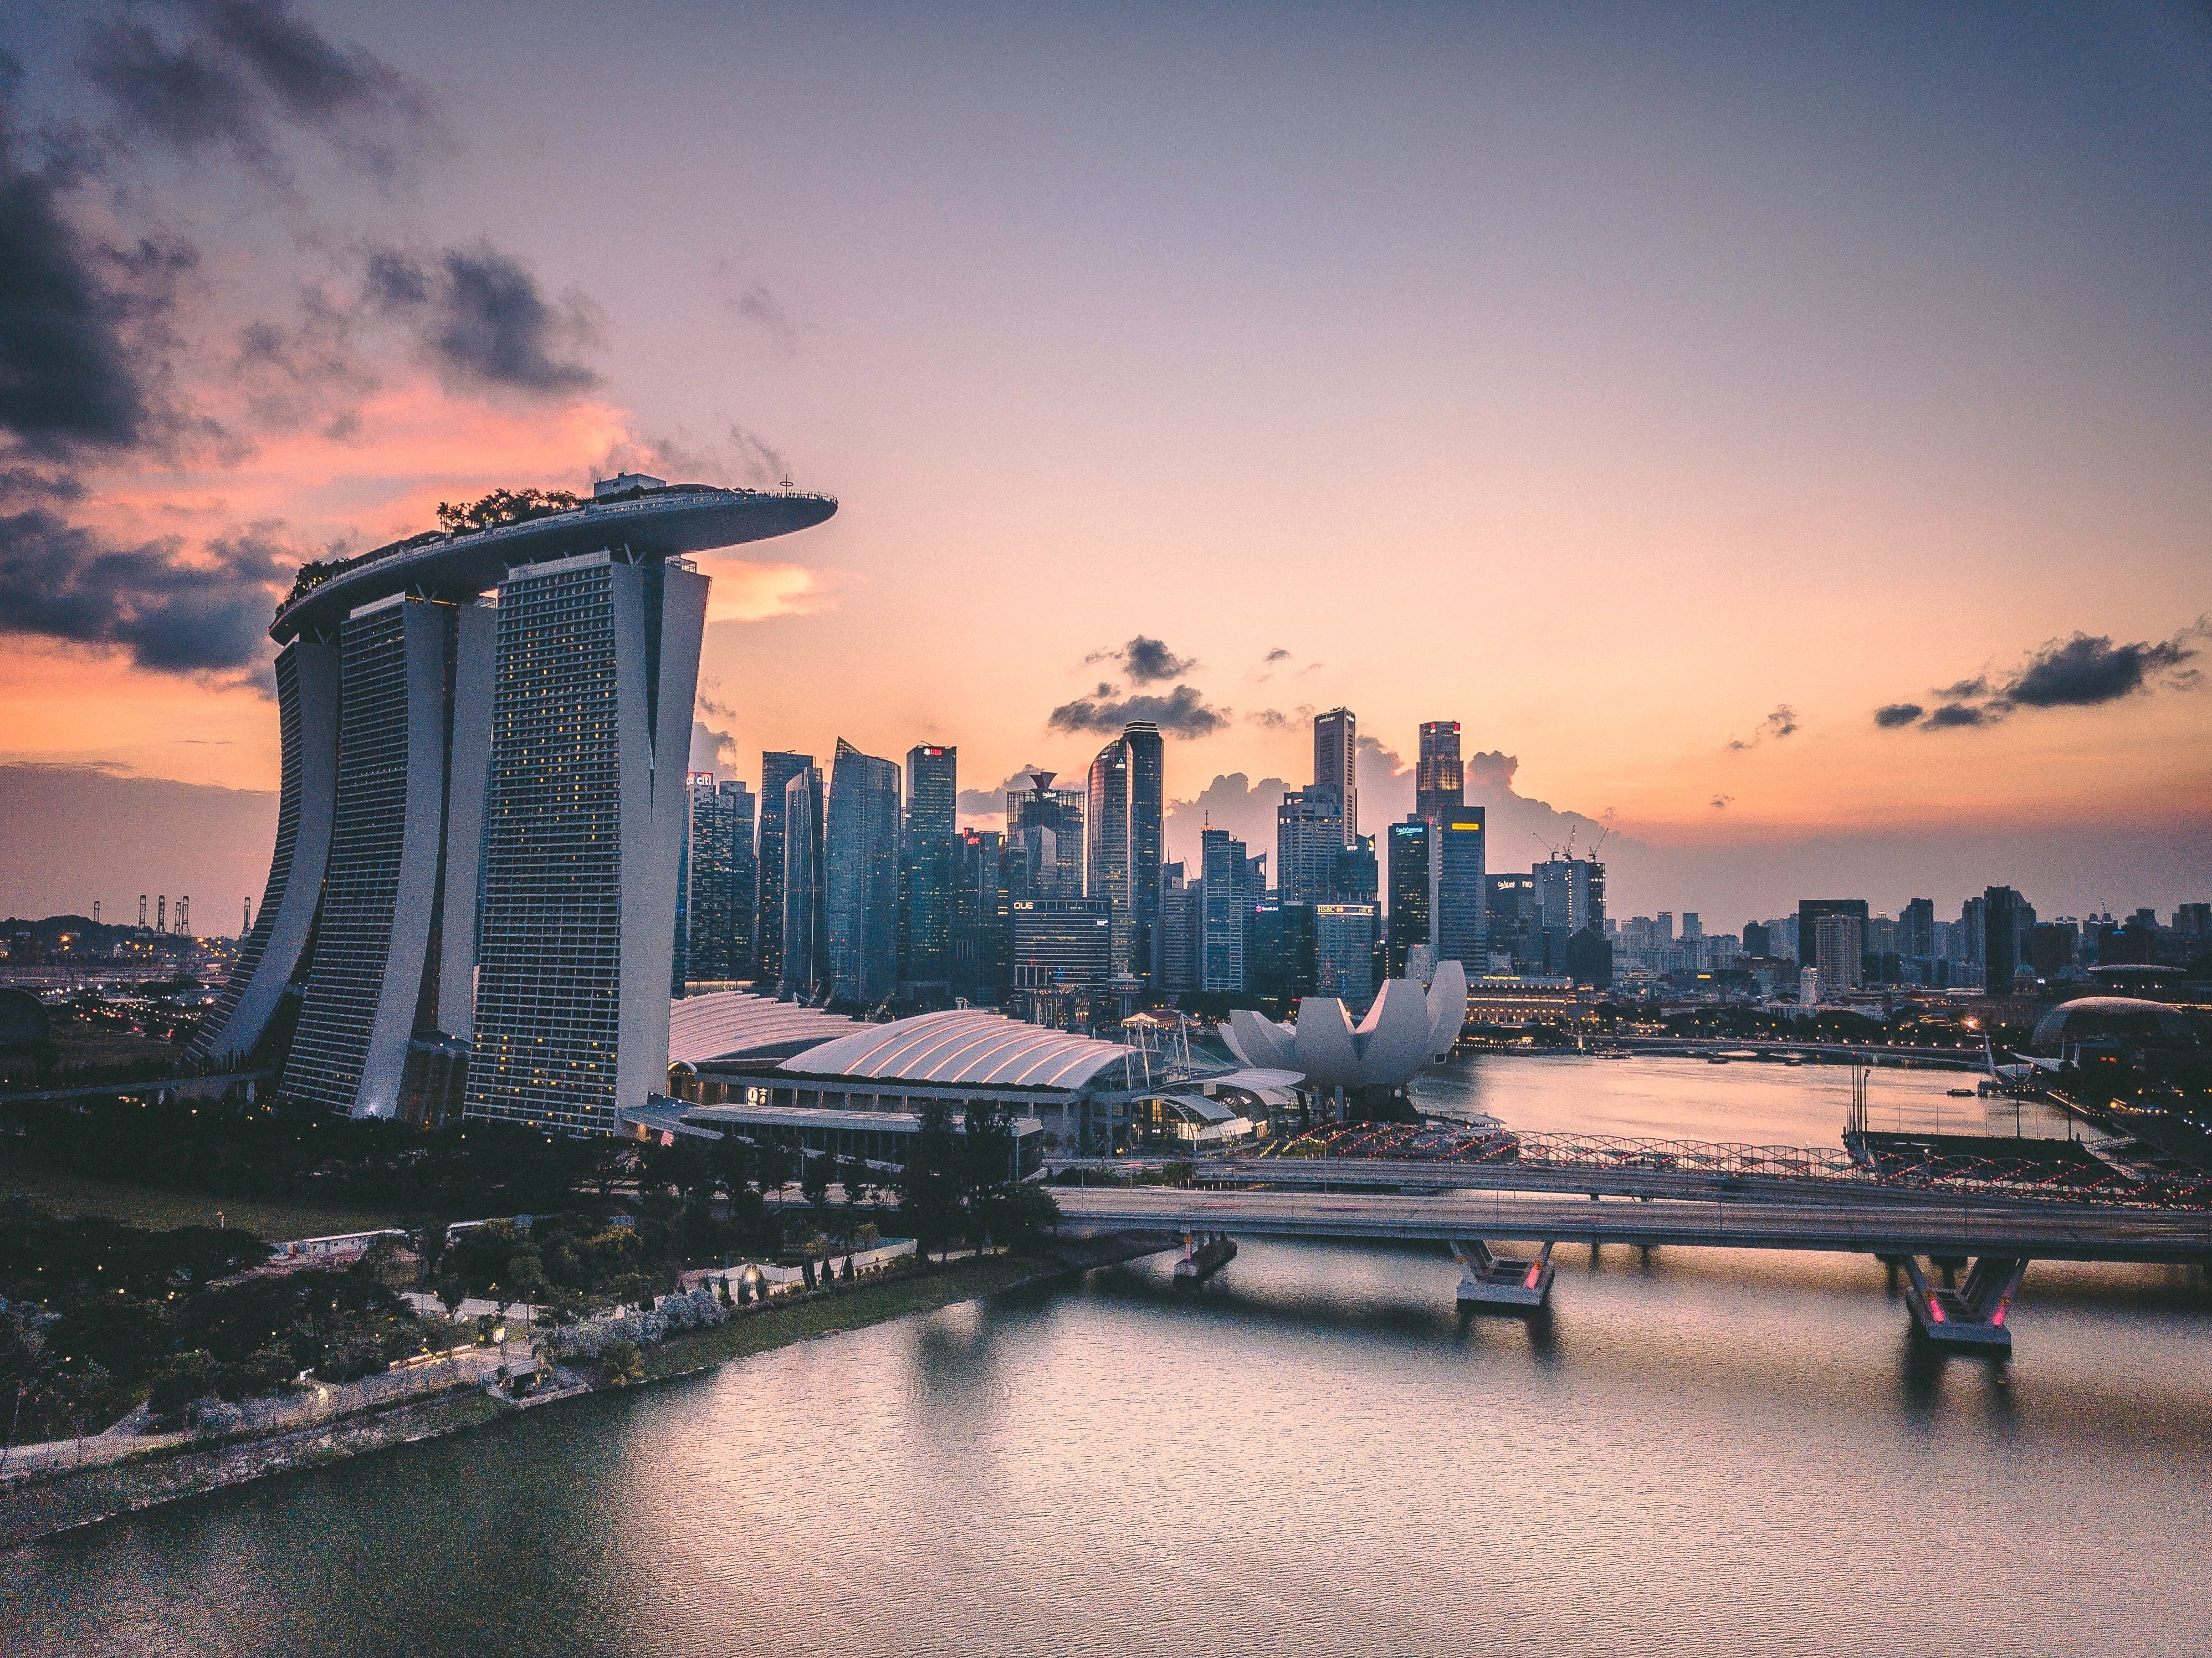 View of Singapore skyline and its surrounding body of water at sunset.